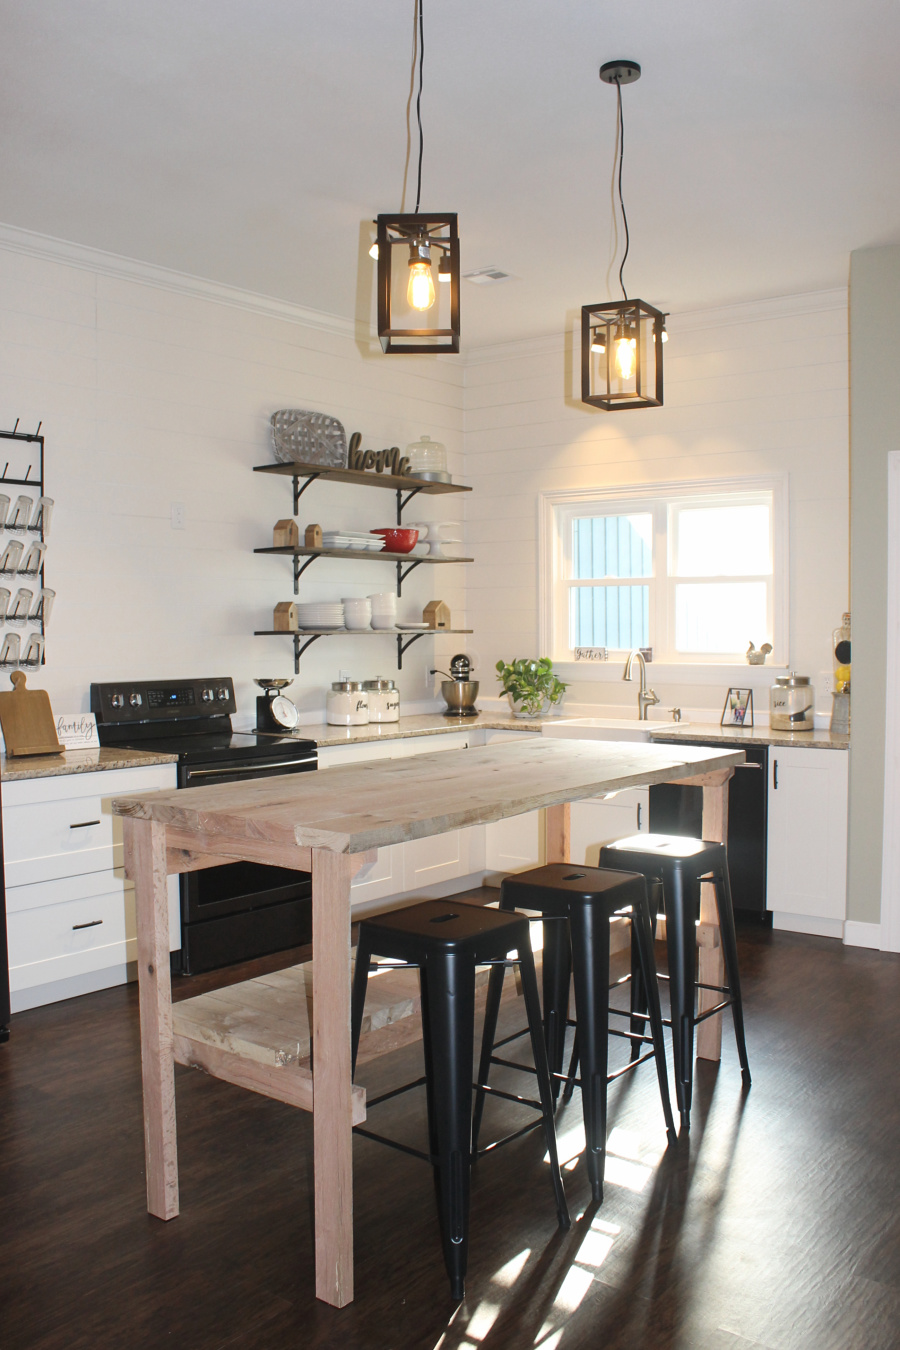 DIY Kitchen Storage: Check out our tutorial to make your own kitchen island